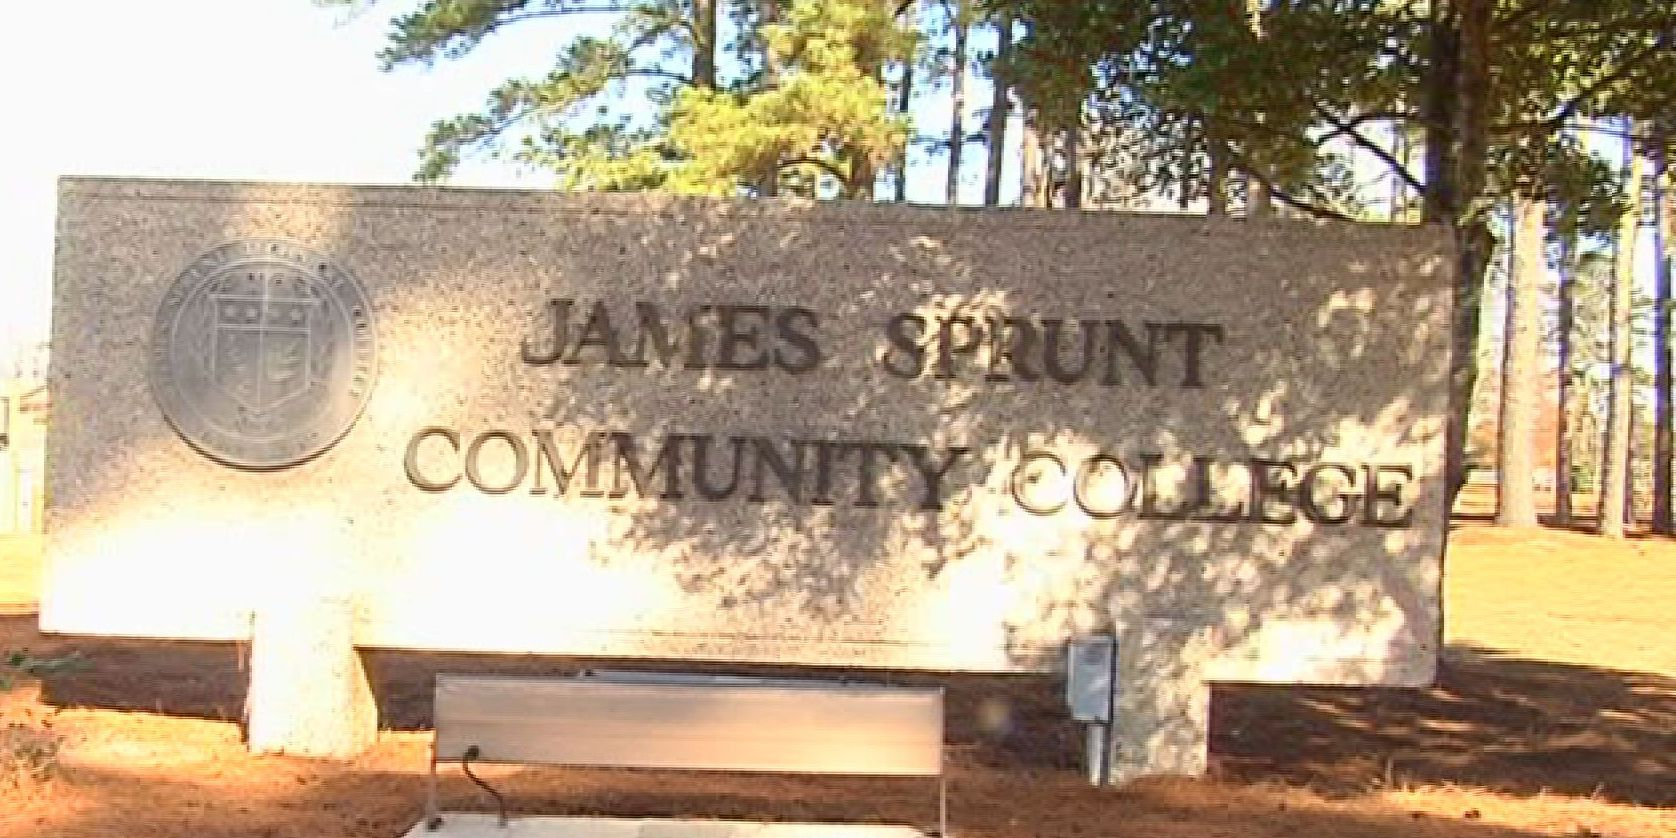 James Sprunt Community College's incubator kitchen missed out on nearly $100K in revenue due to poor oversight